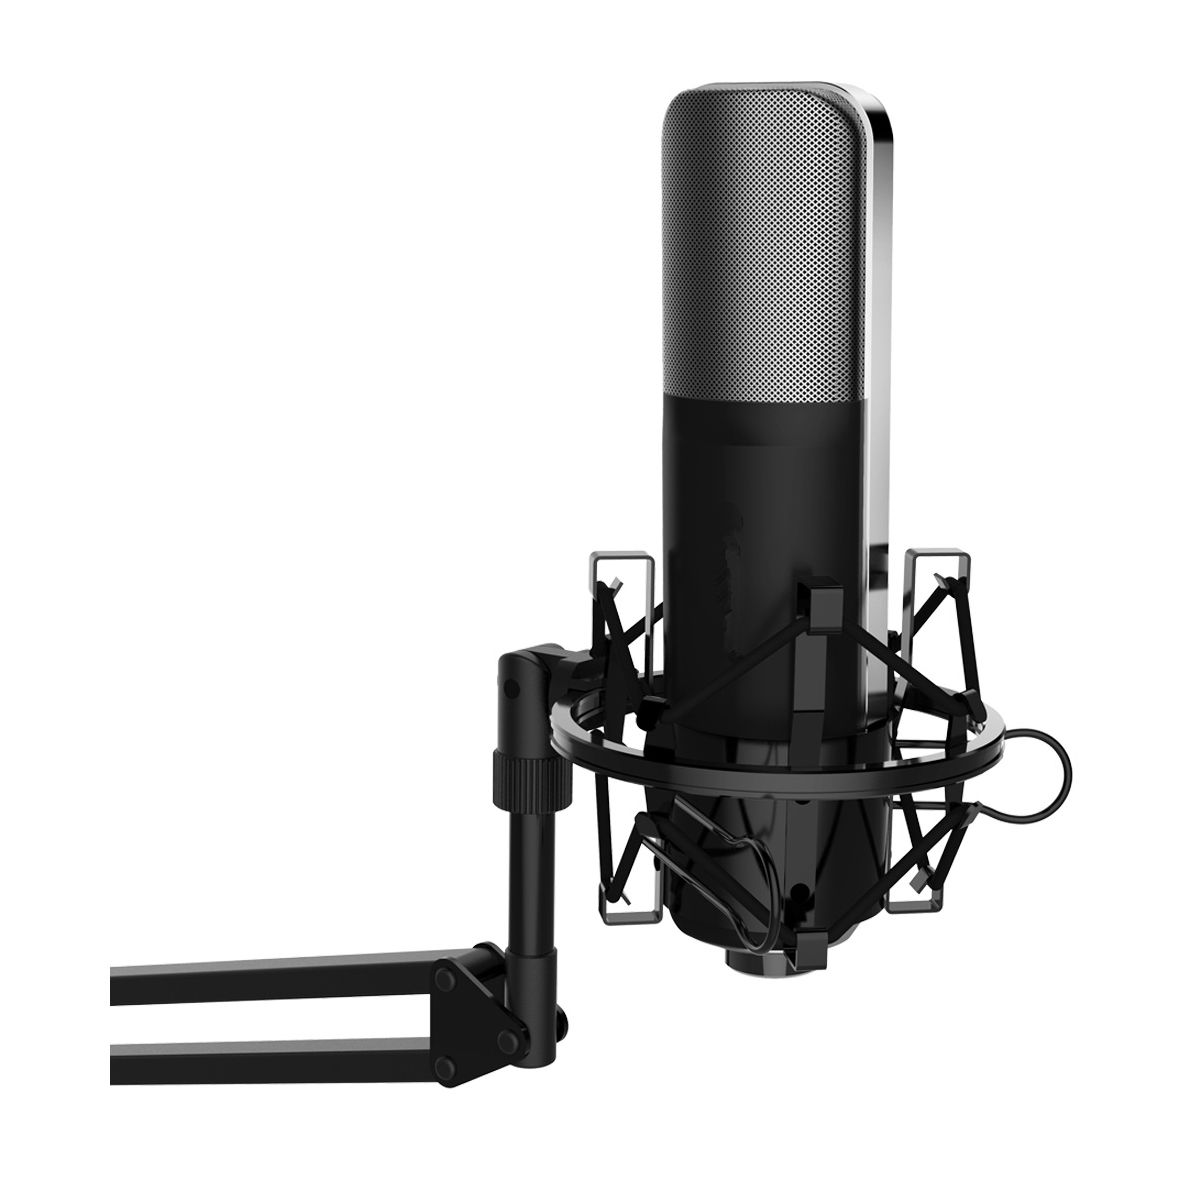 Top Deals Professional Cardioid Condenser Studio Microphone with Shock Mount Holder, Perfect for YouTube Recording, Singing dr 880 high quality professional condenser sound recording microphone with shock mount for radio braodcasting singing black